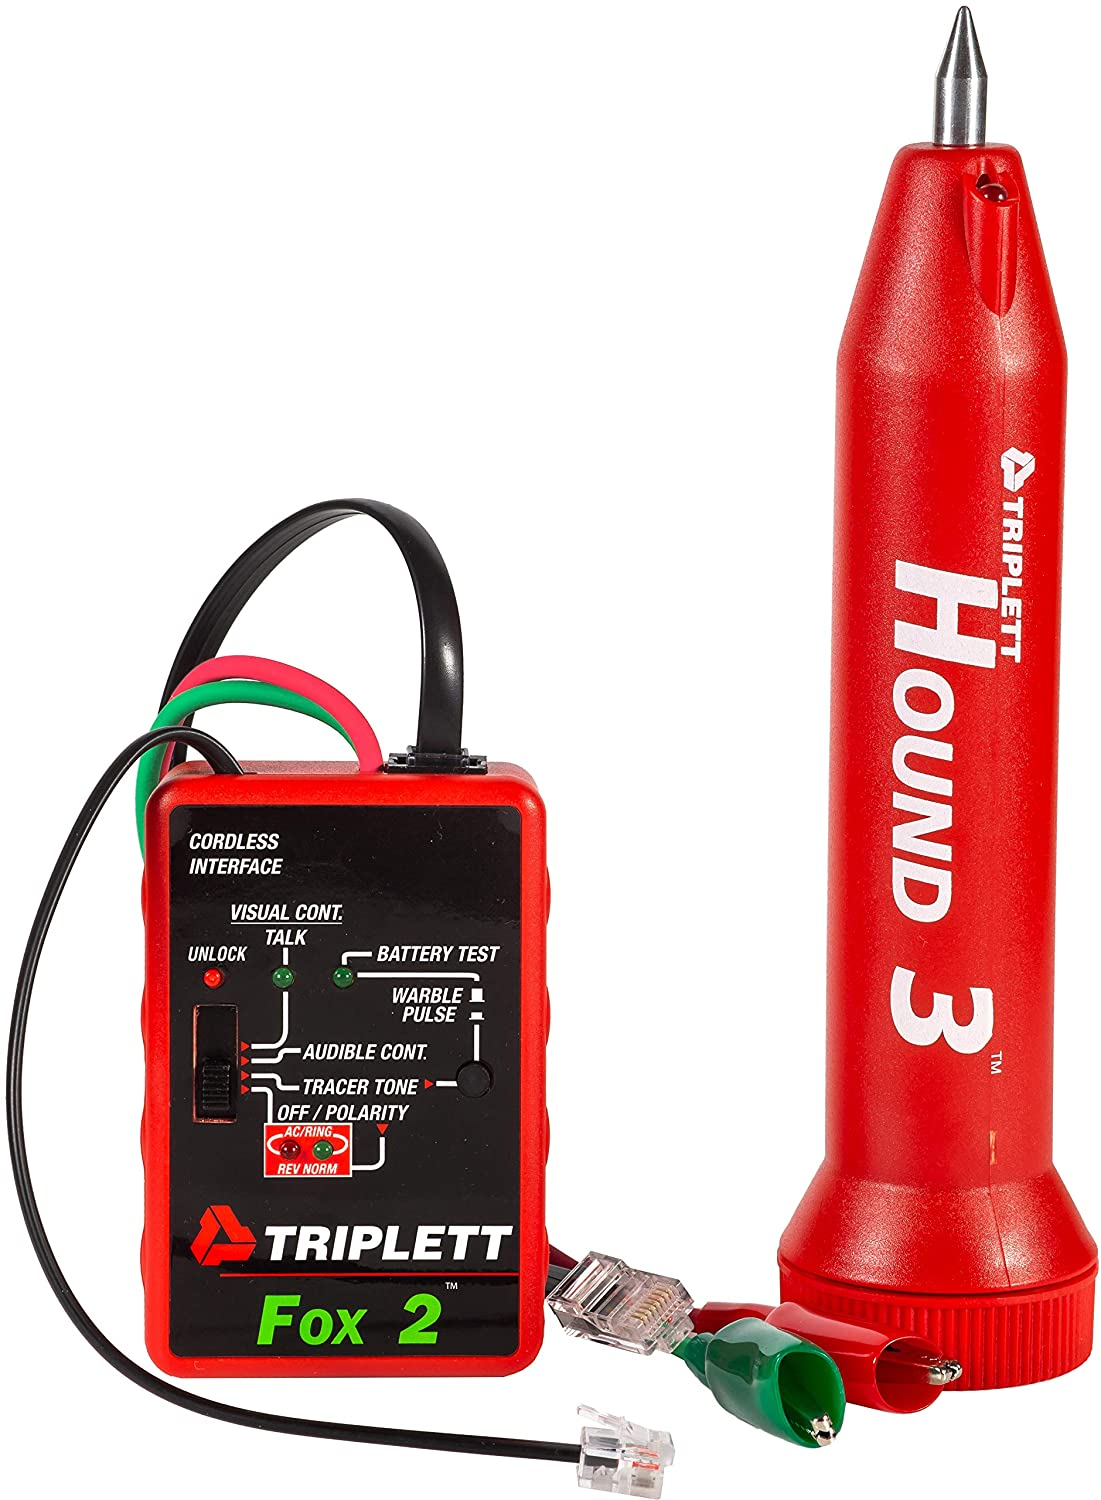 Triplett 3399 Fox 2 /& Hound 3 Wire Tracing Kit With Carrying Case NEW